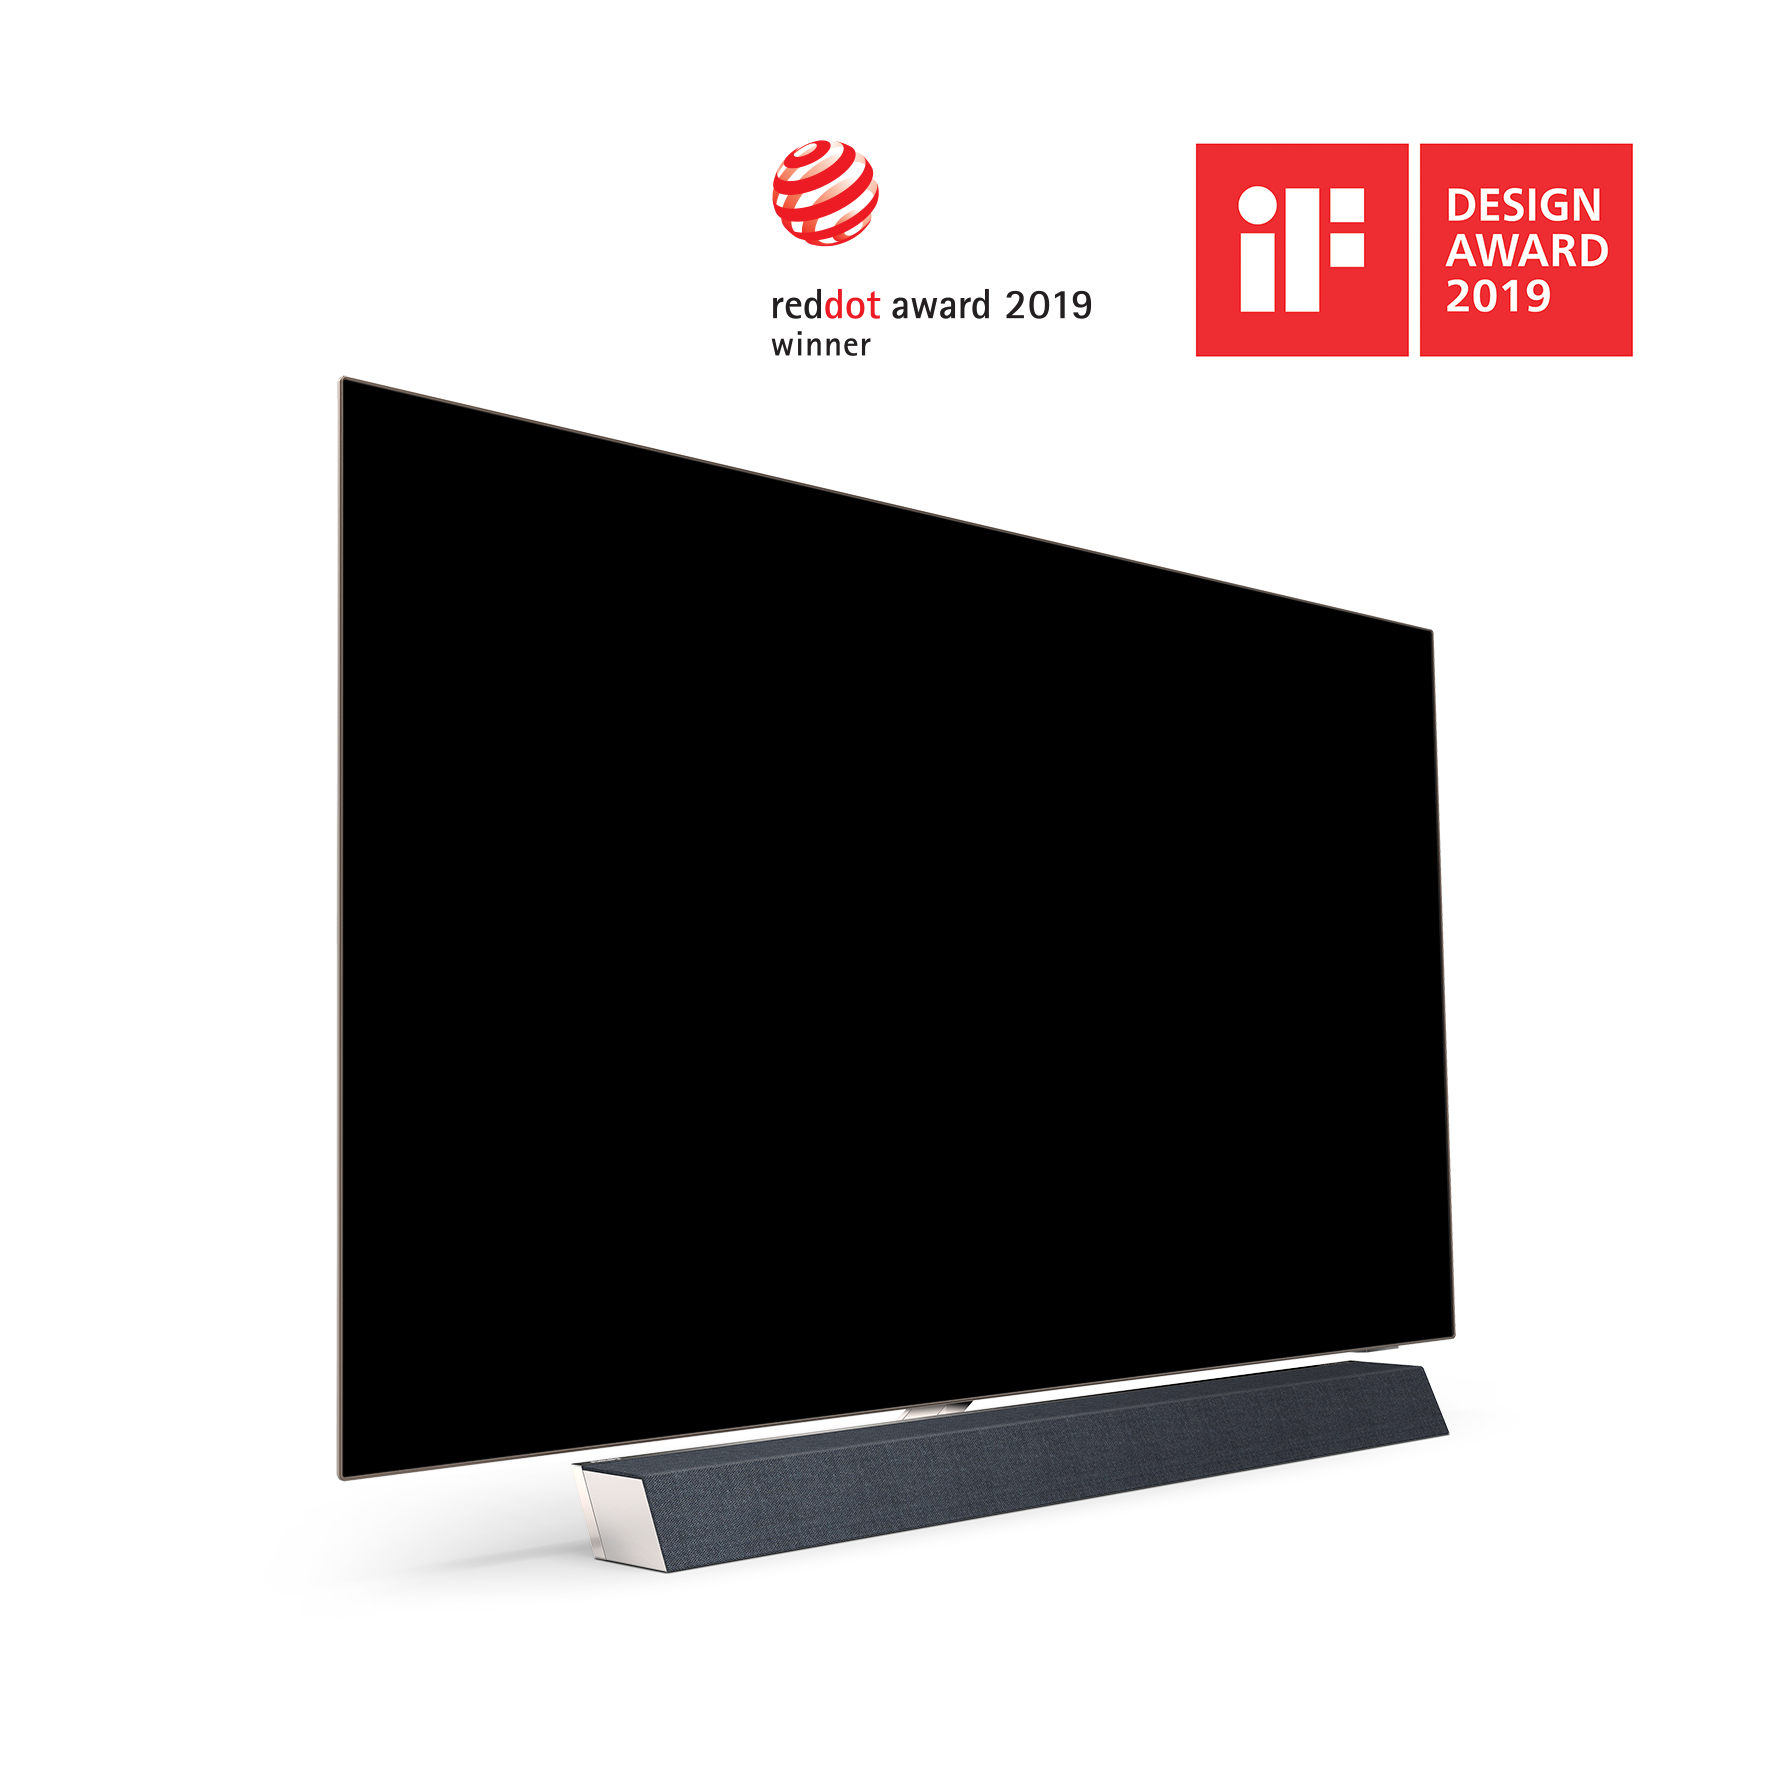 TV OLED PHILIPS 55OLED934/12 4K UHD ANDROID